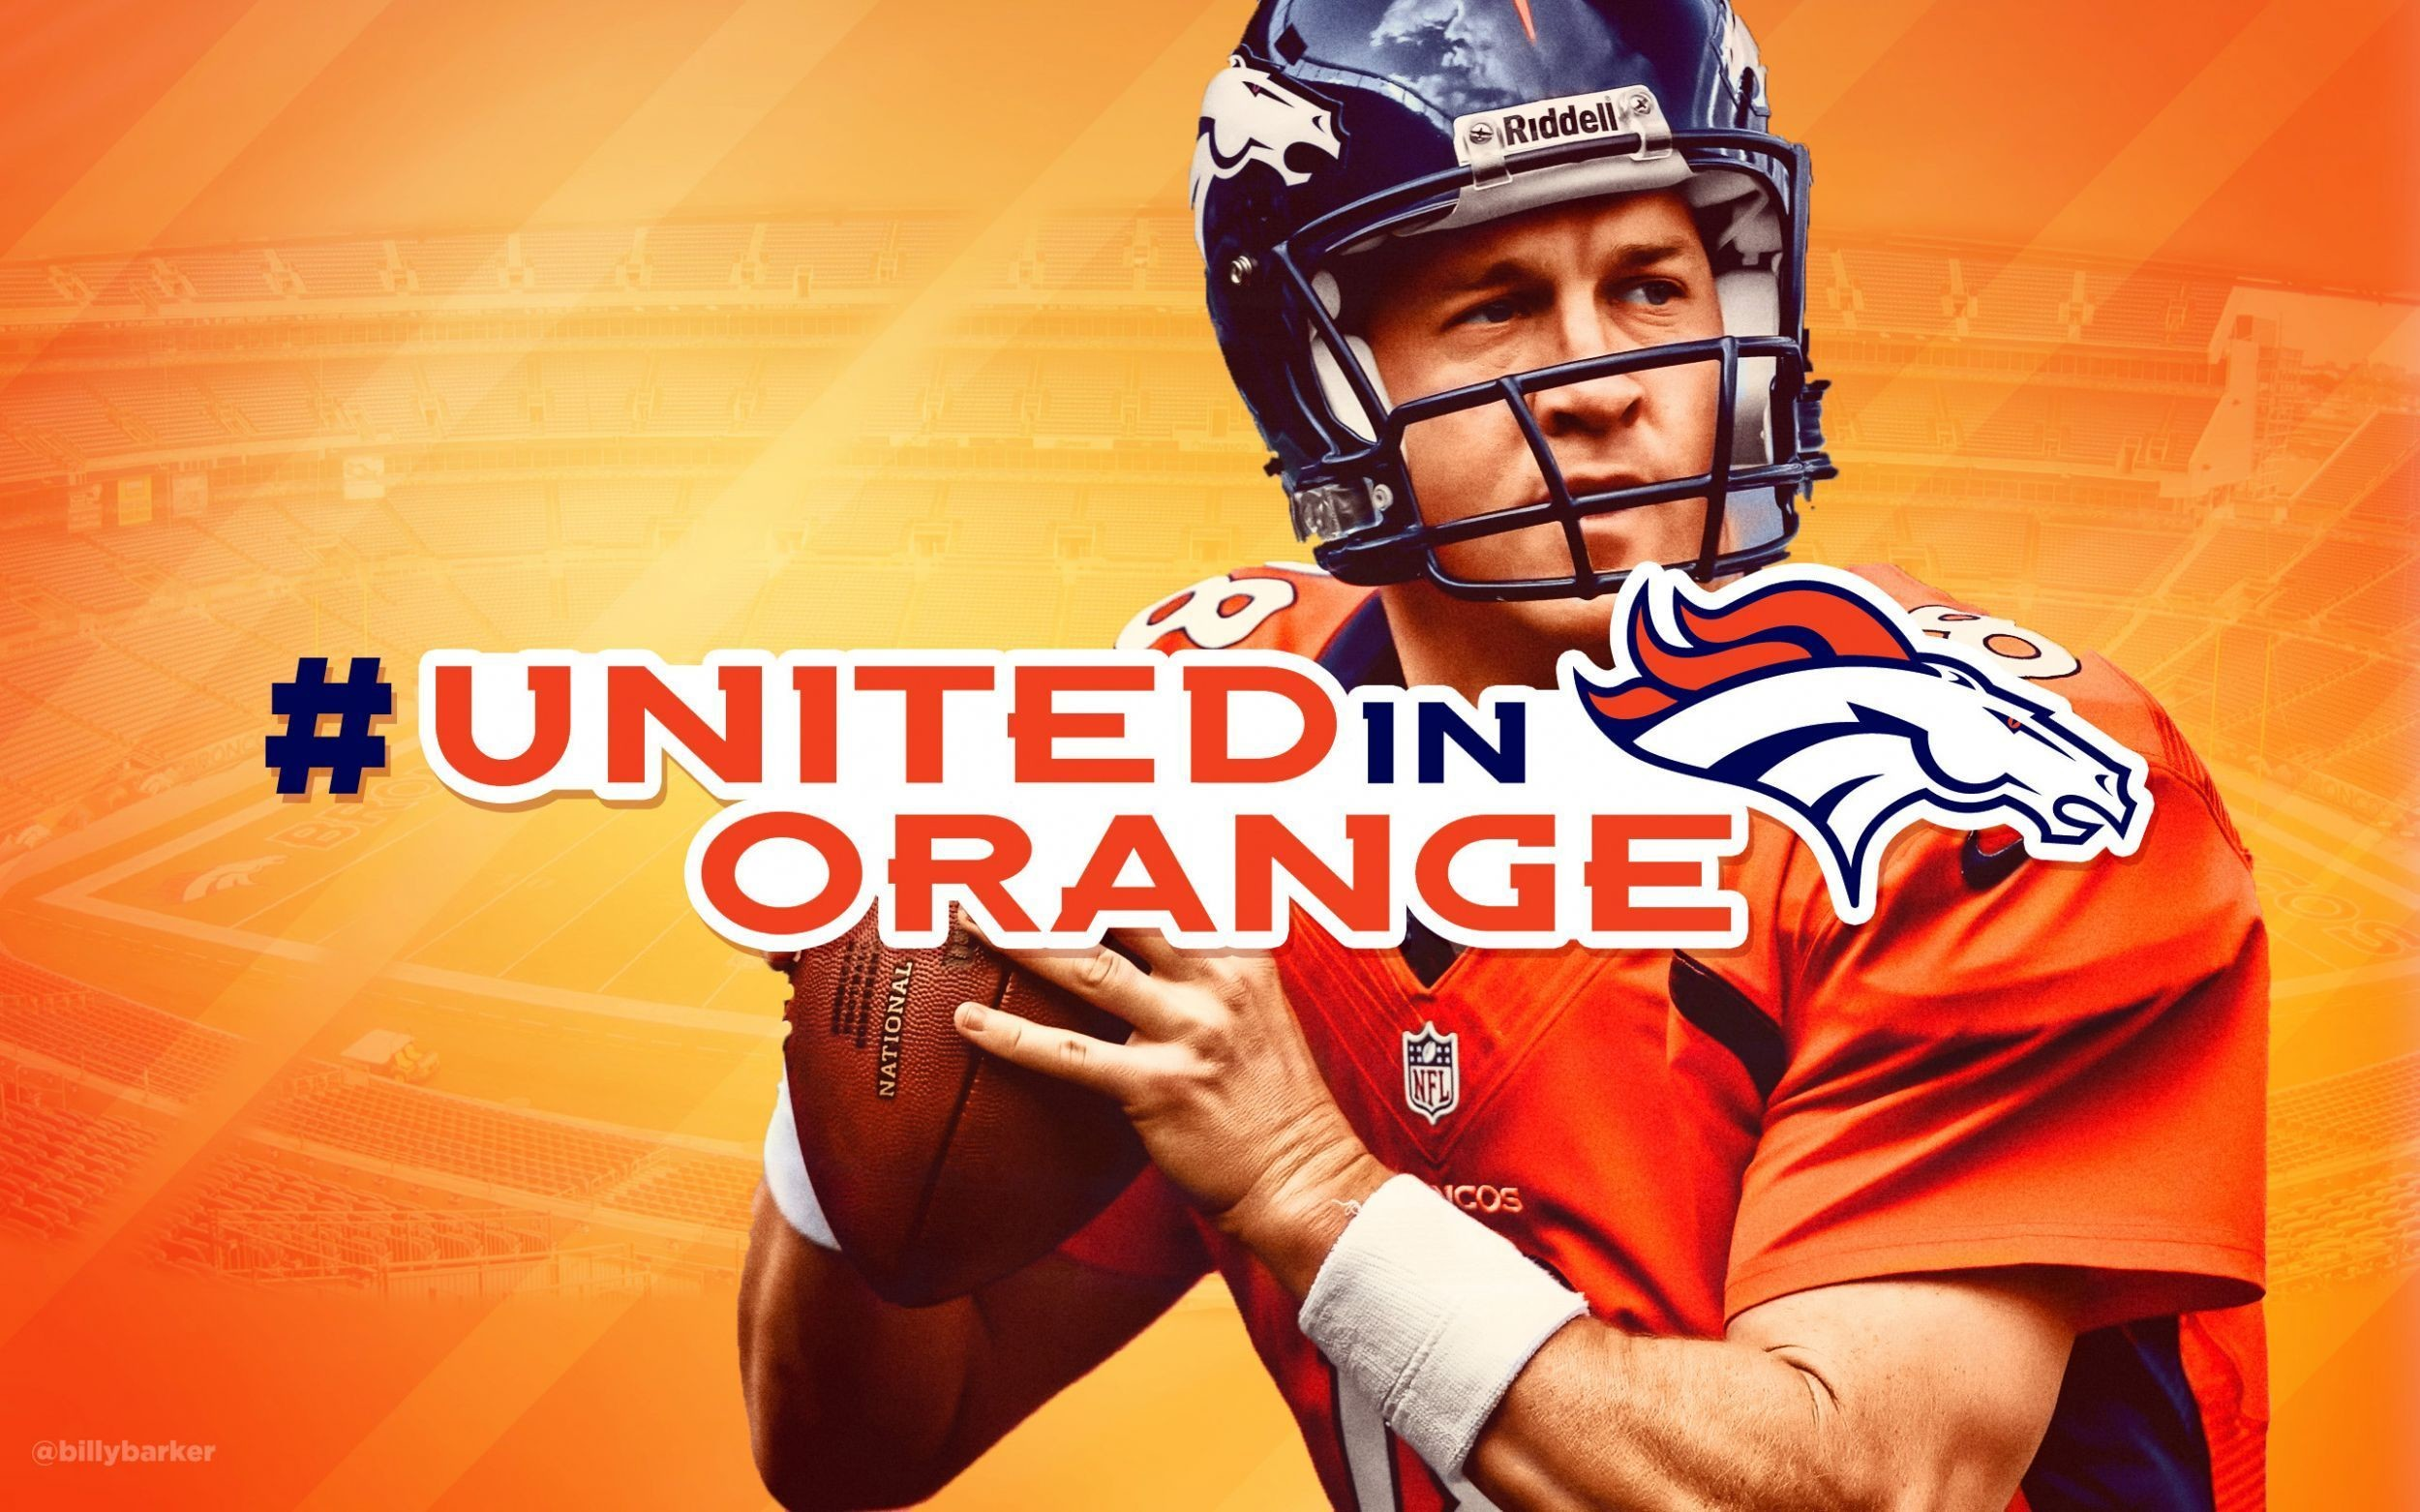 2500x1562 High Quality Denver Broncos Backgrounds 1101.93 Kb, Wallpapers and Pictures  – download for free